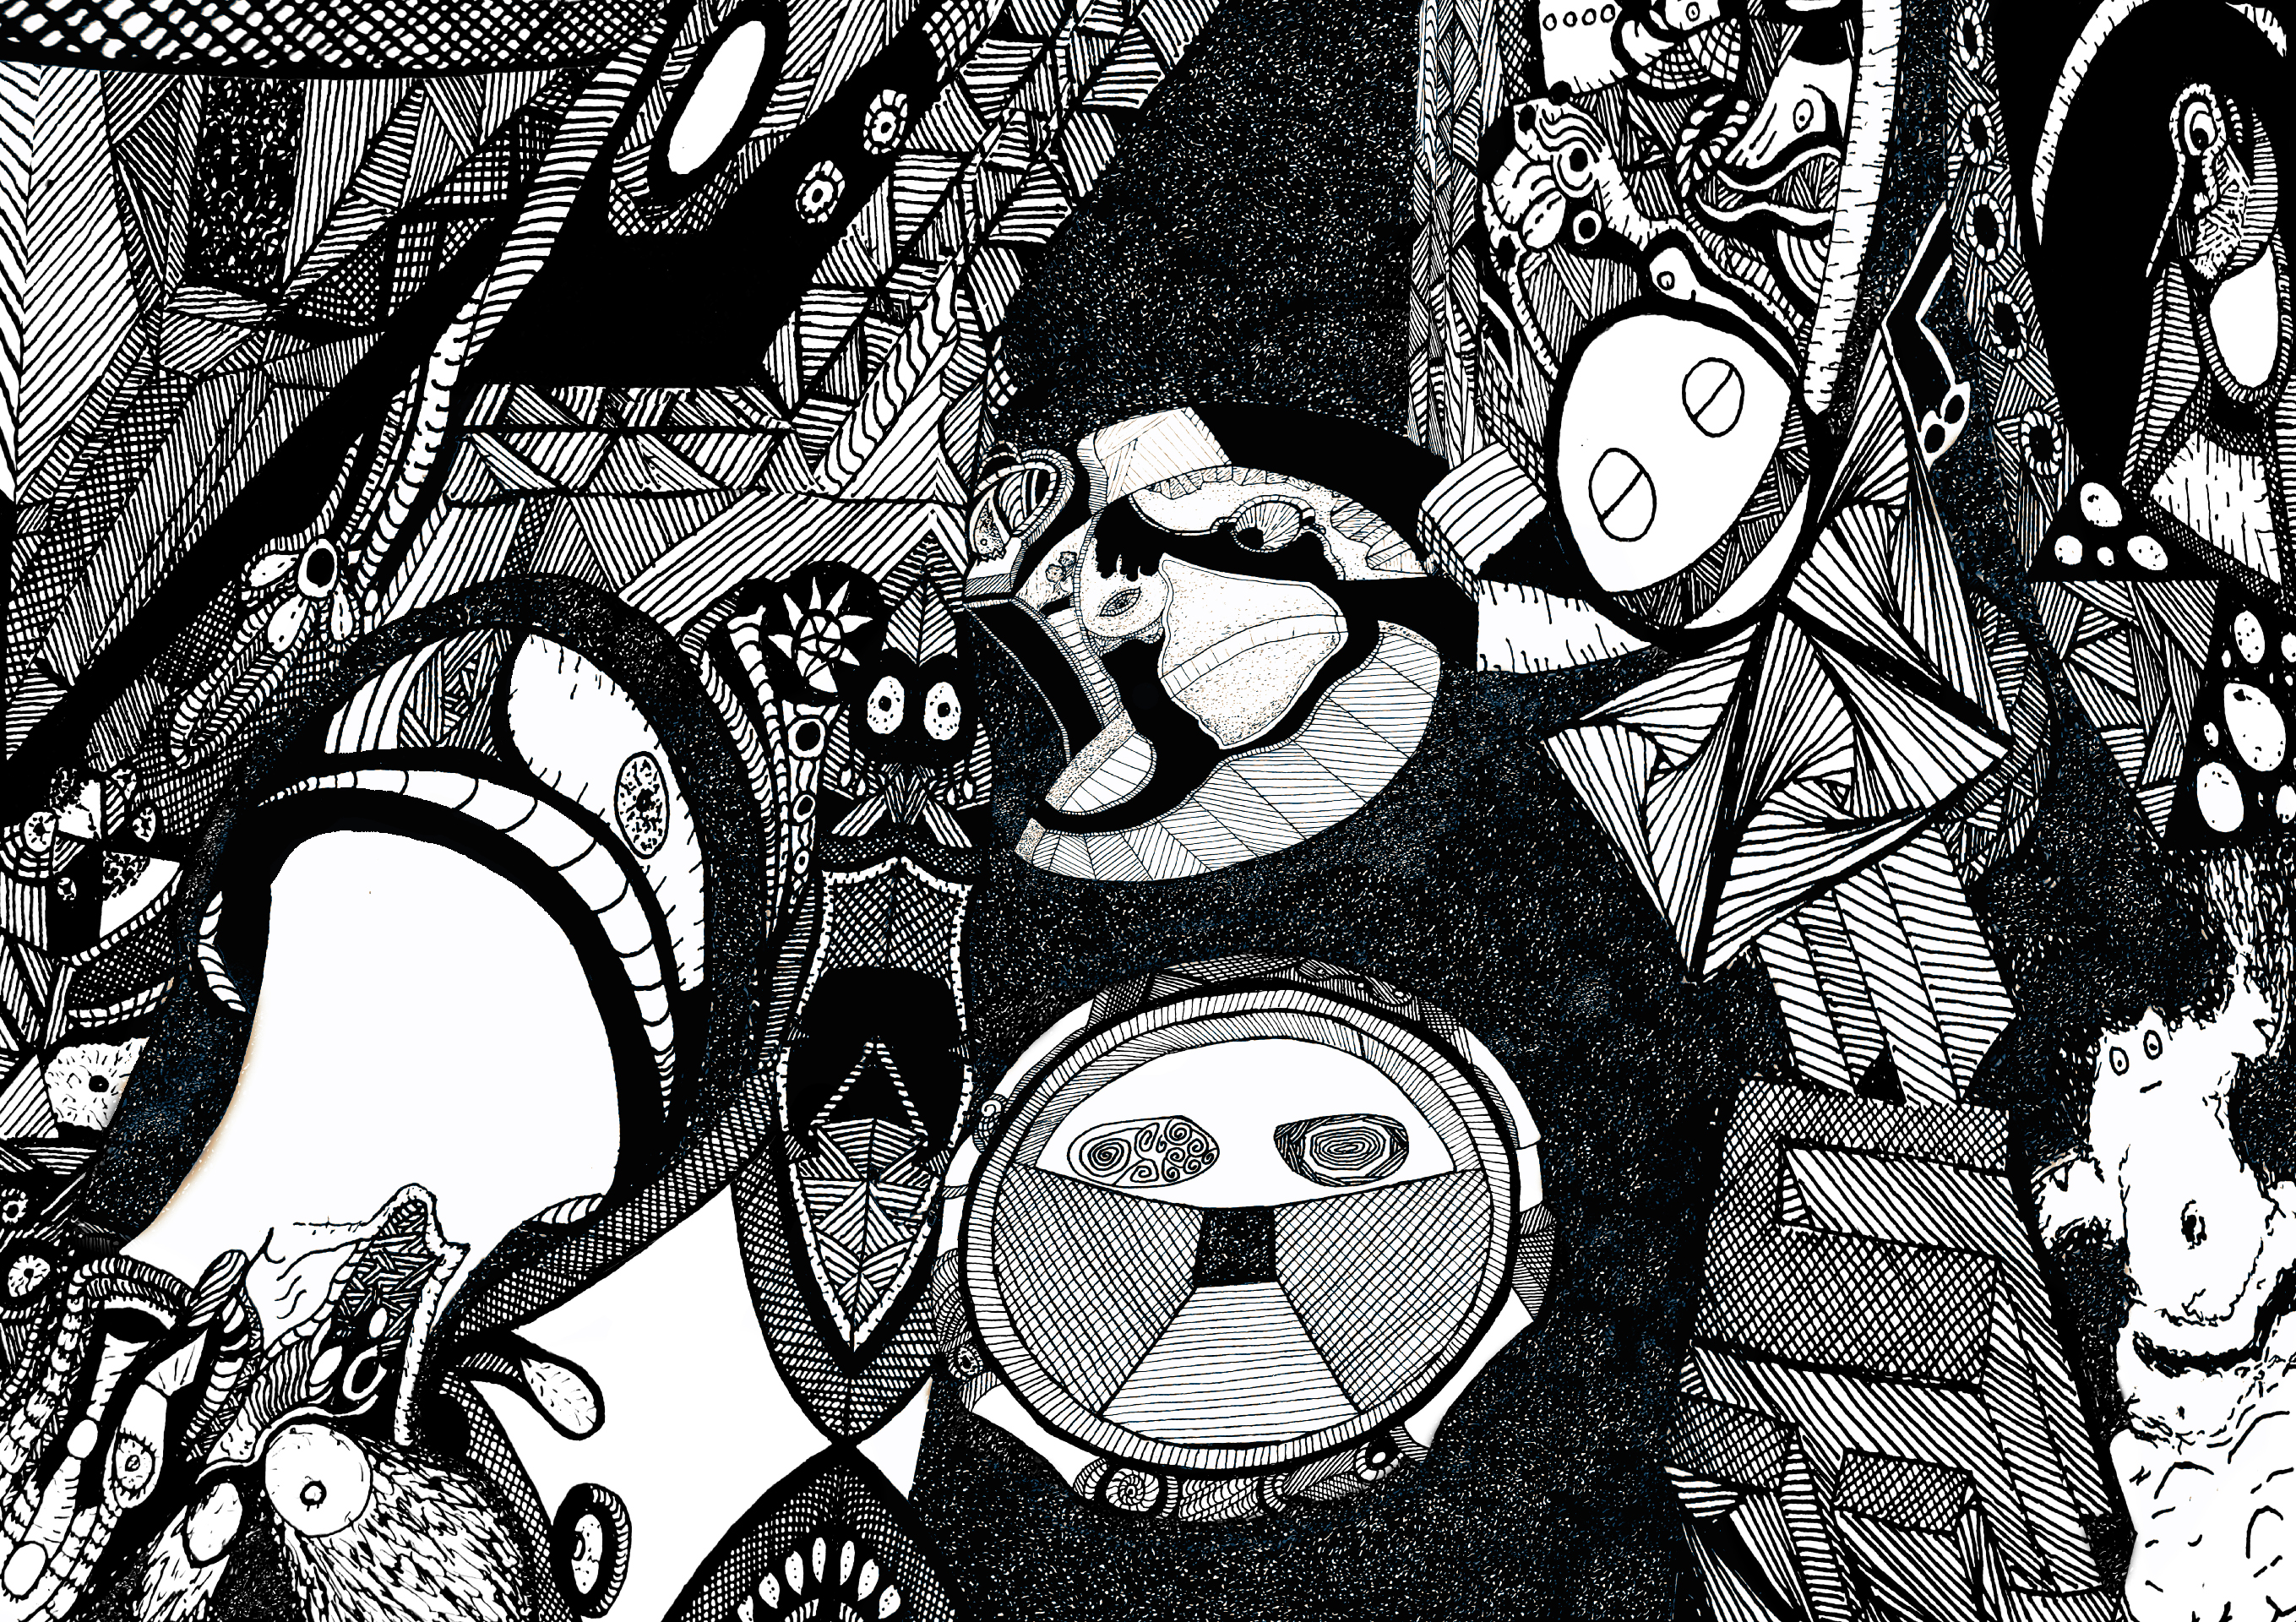 General 2718x1920 abstract drawing pen psychedelic lines line art trippy mushroom face stars space